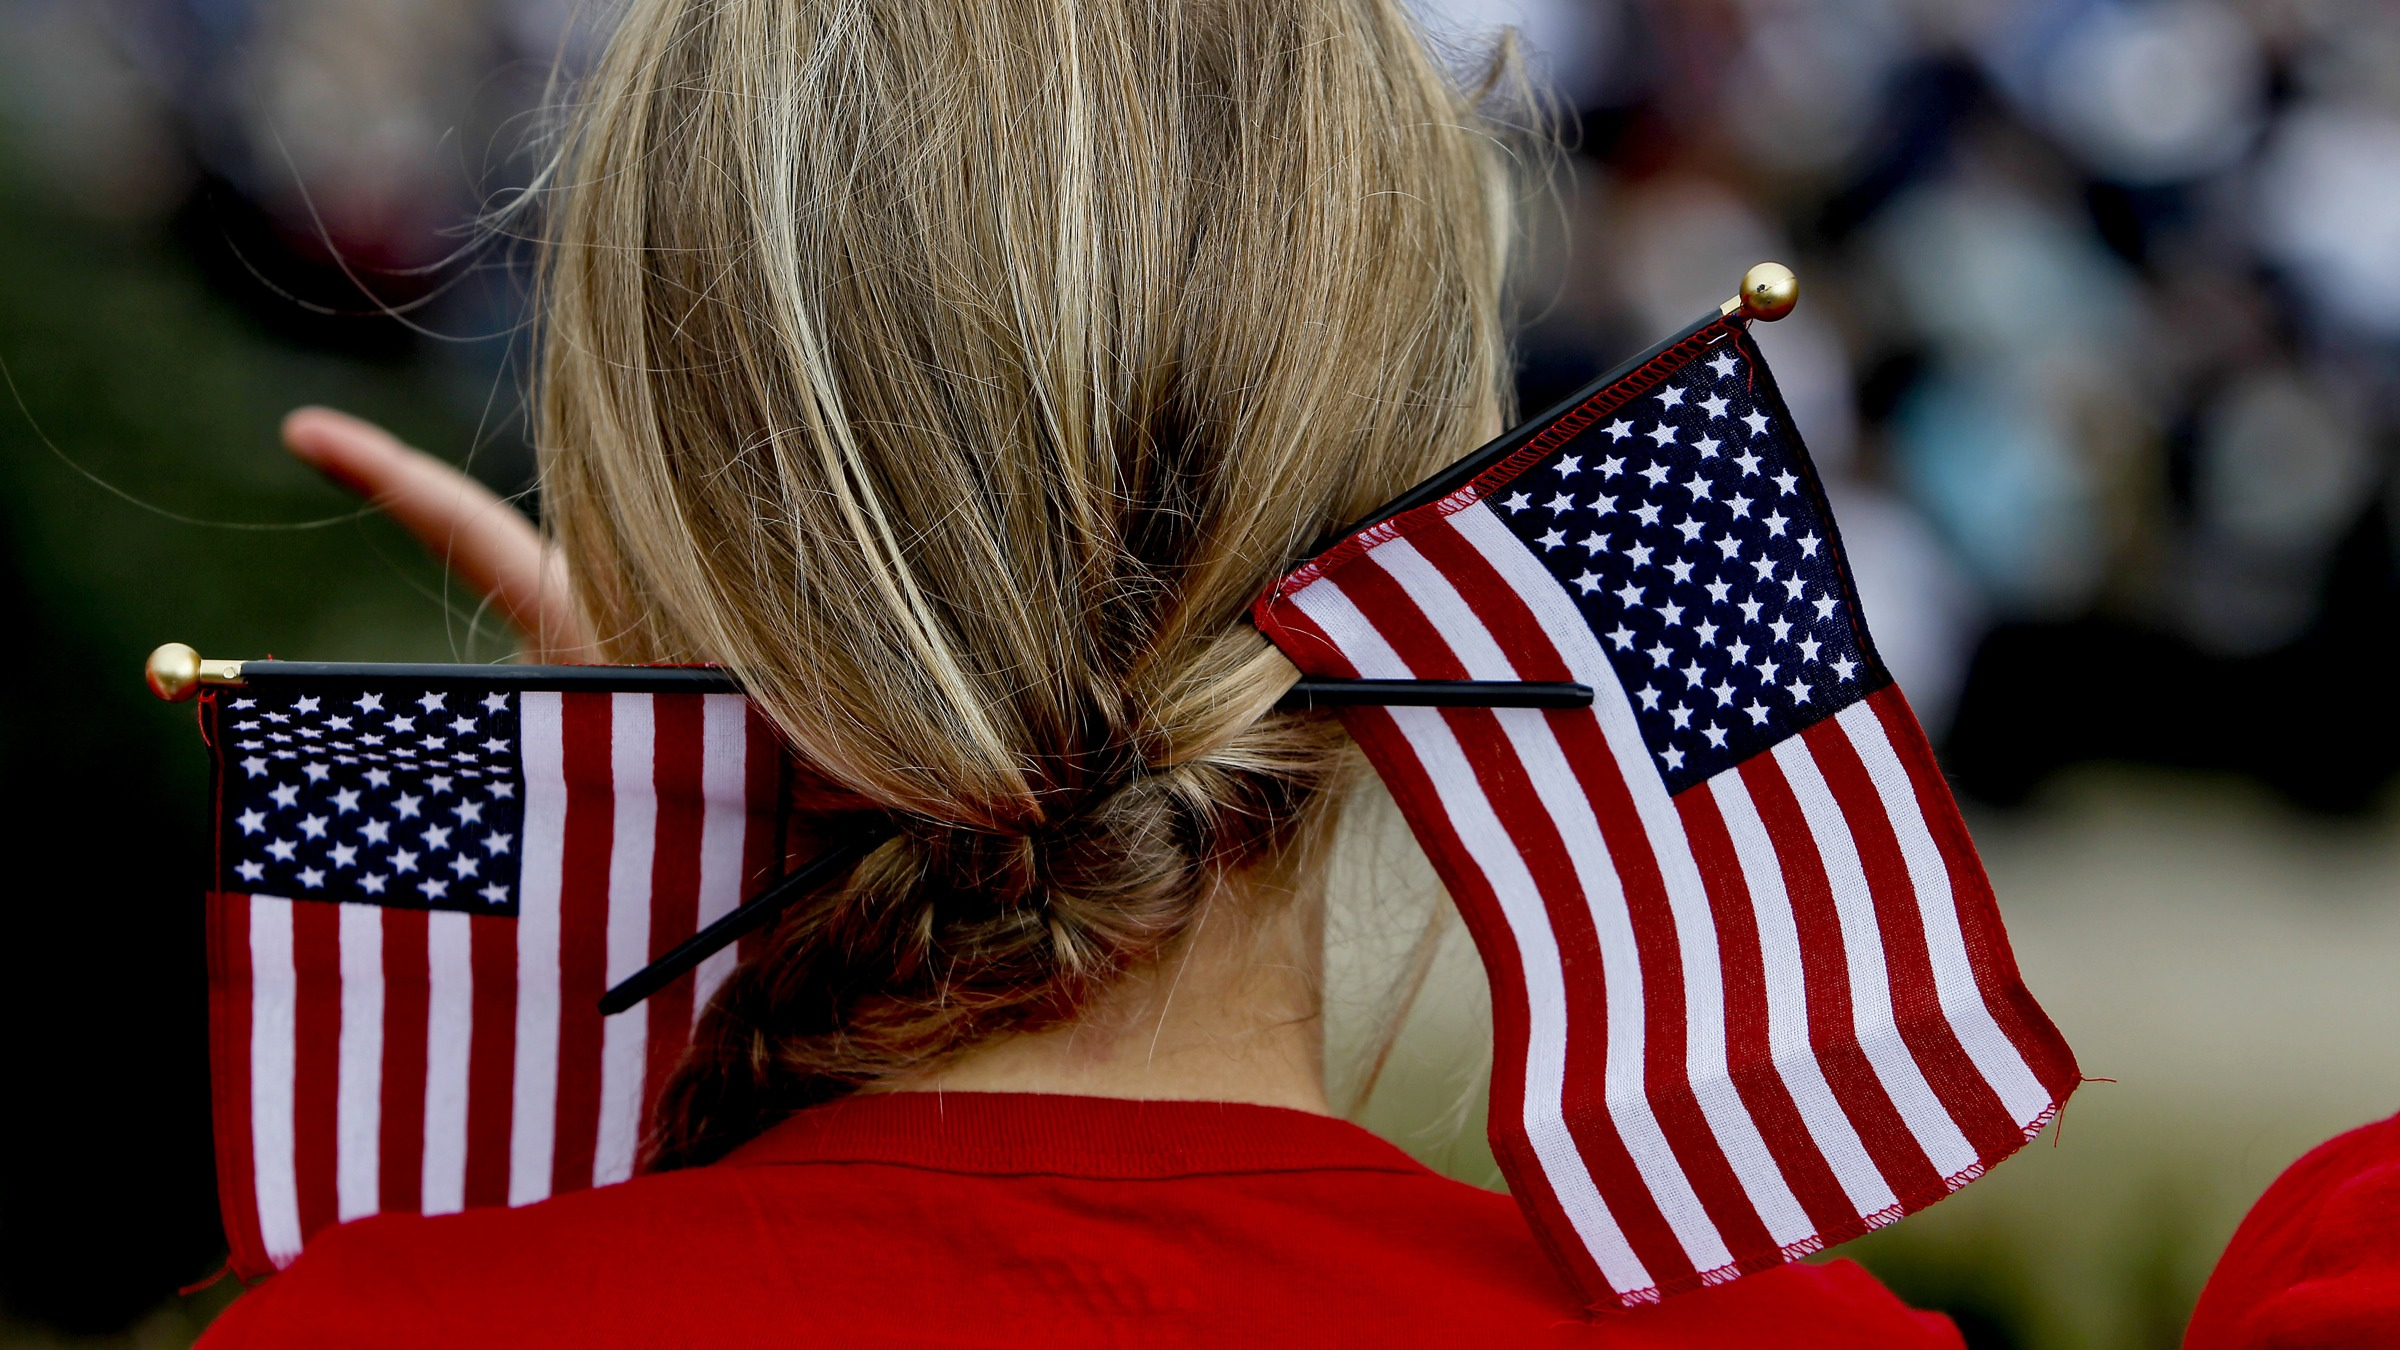 A woman has the Stars and Stripes woven into her hair as people participate in the Danish-American Rebild Celebration in Rebild, Denmark, Thursday July 4, 2013. The Rebild organization celebrates American Independence Day each year, and Danes in American still make the trip back to the old country to participate in the festival. (AP Photo/Polfoto, Rene Schutze) DENMARK OUT